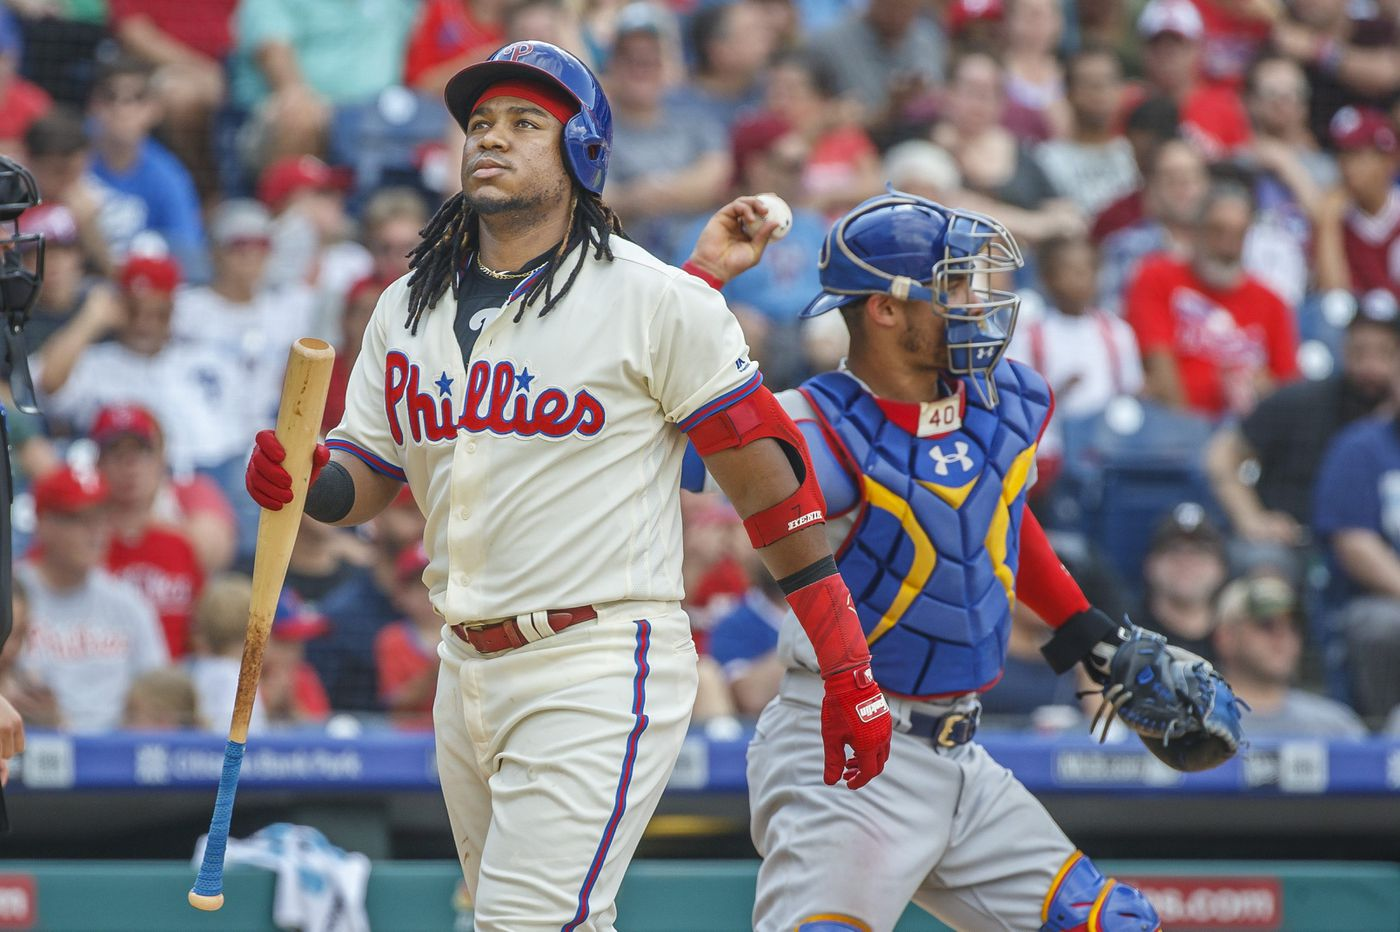 Reeling Phillies quickly run out of electricity in loss to Cubs, losing steam in playoff race